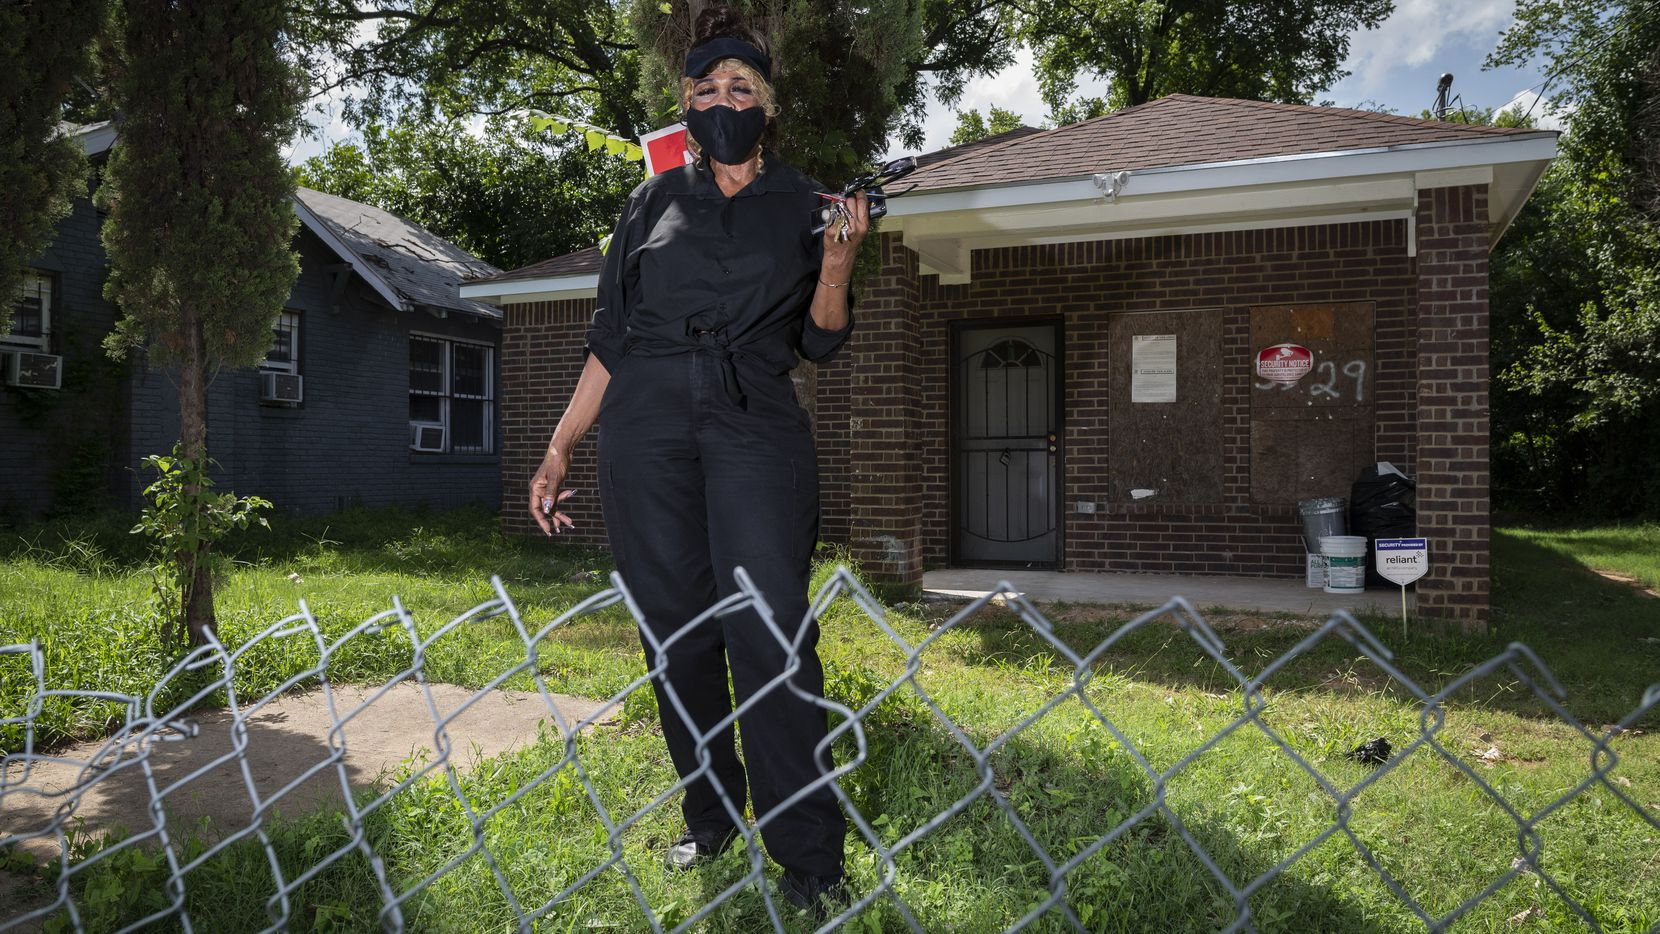 Doretha Traylor, 71, wearing a face mask, outside her soon to be home that is being repaired by the Shalom Builders of Texas, on July 14. Her home burned down after an electrical fire in 2013.